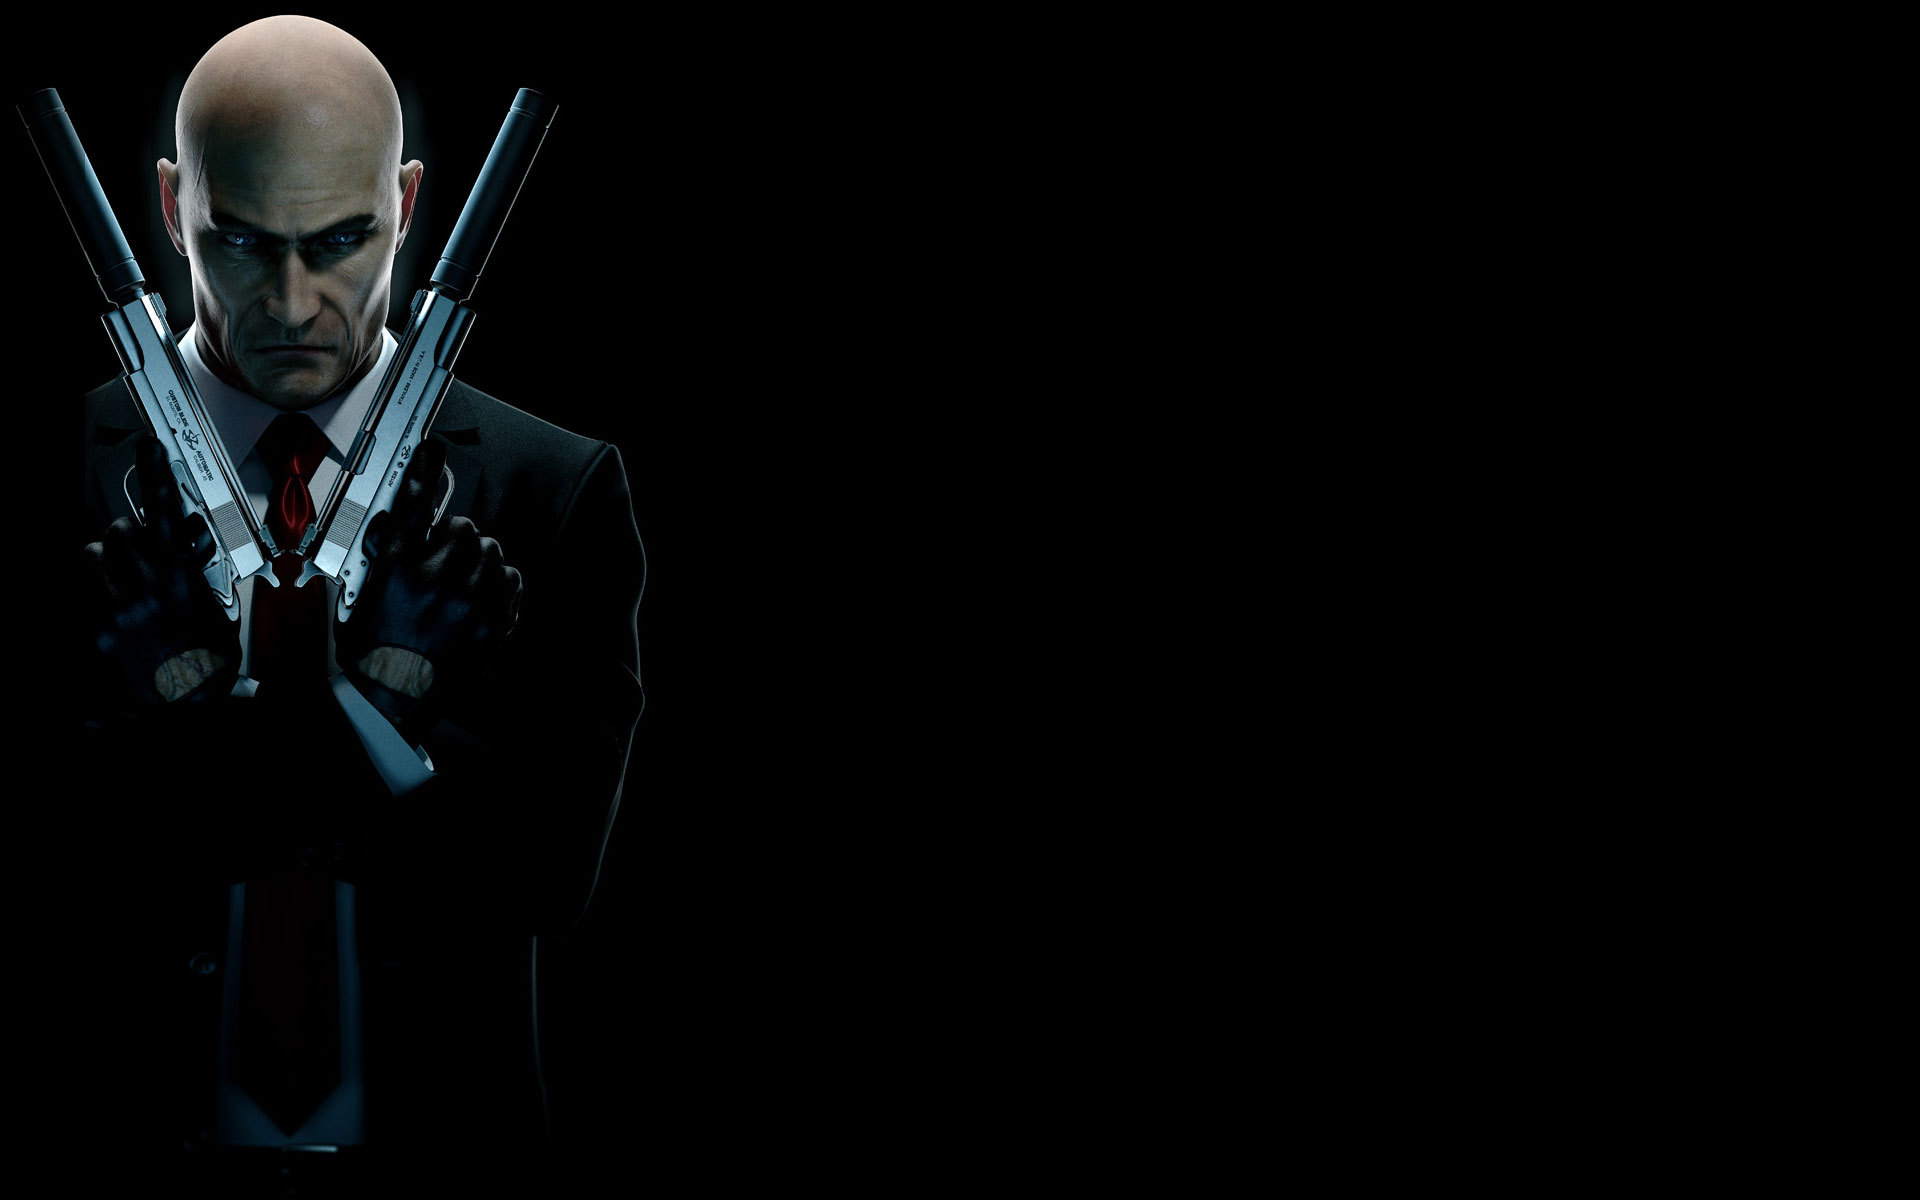 Hitman Absolution Computer Wallpapers Desktop 1920x1200